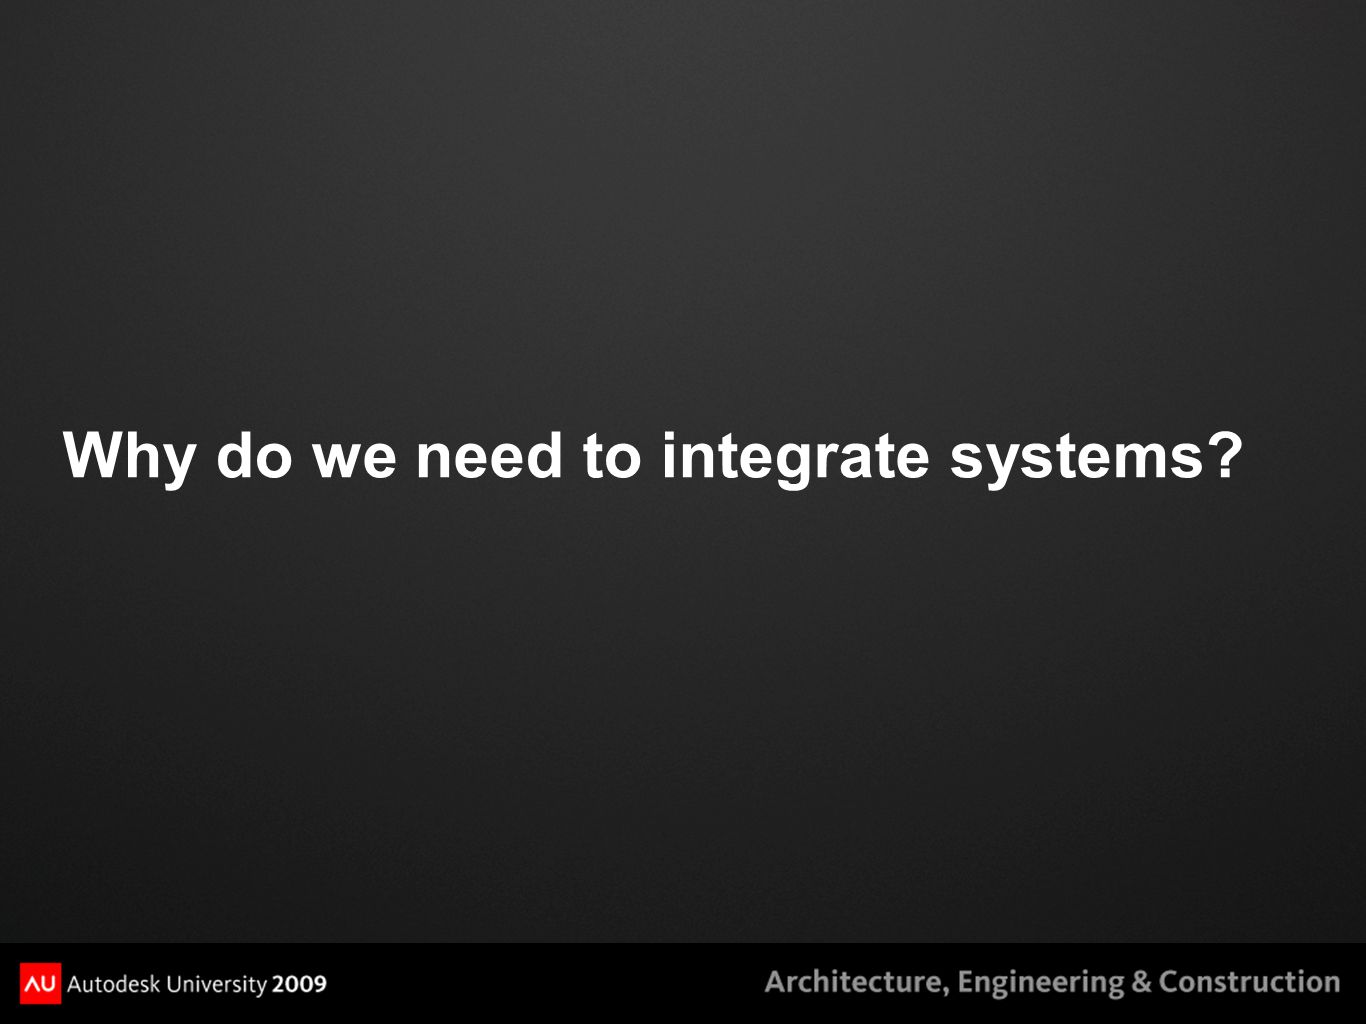 Why do we need to integrate systems?